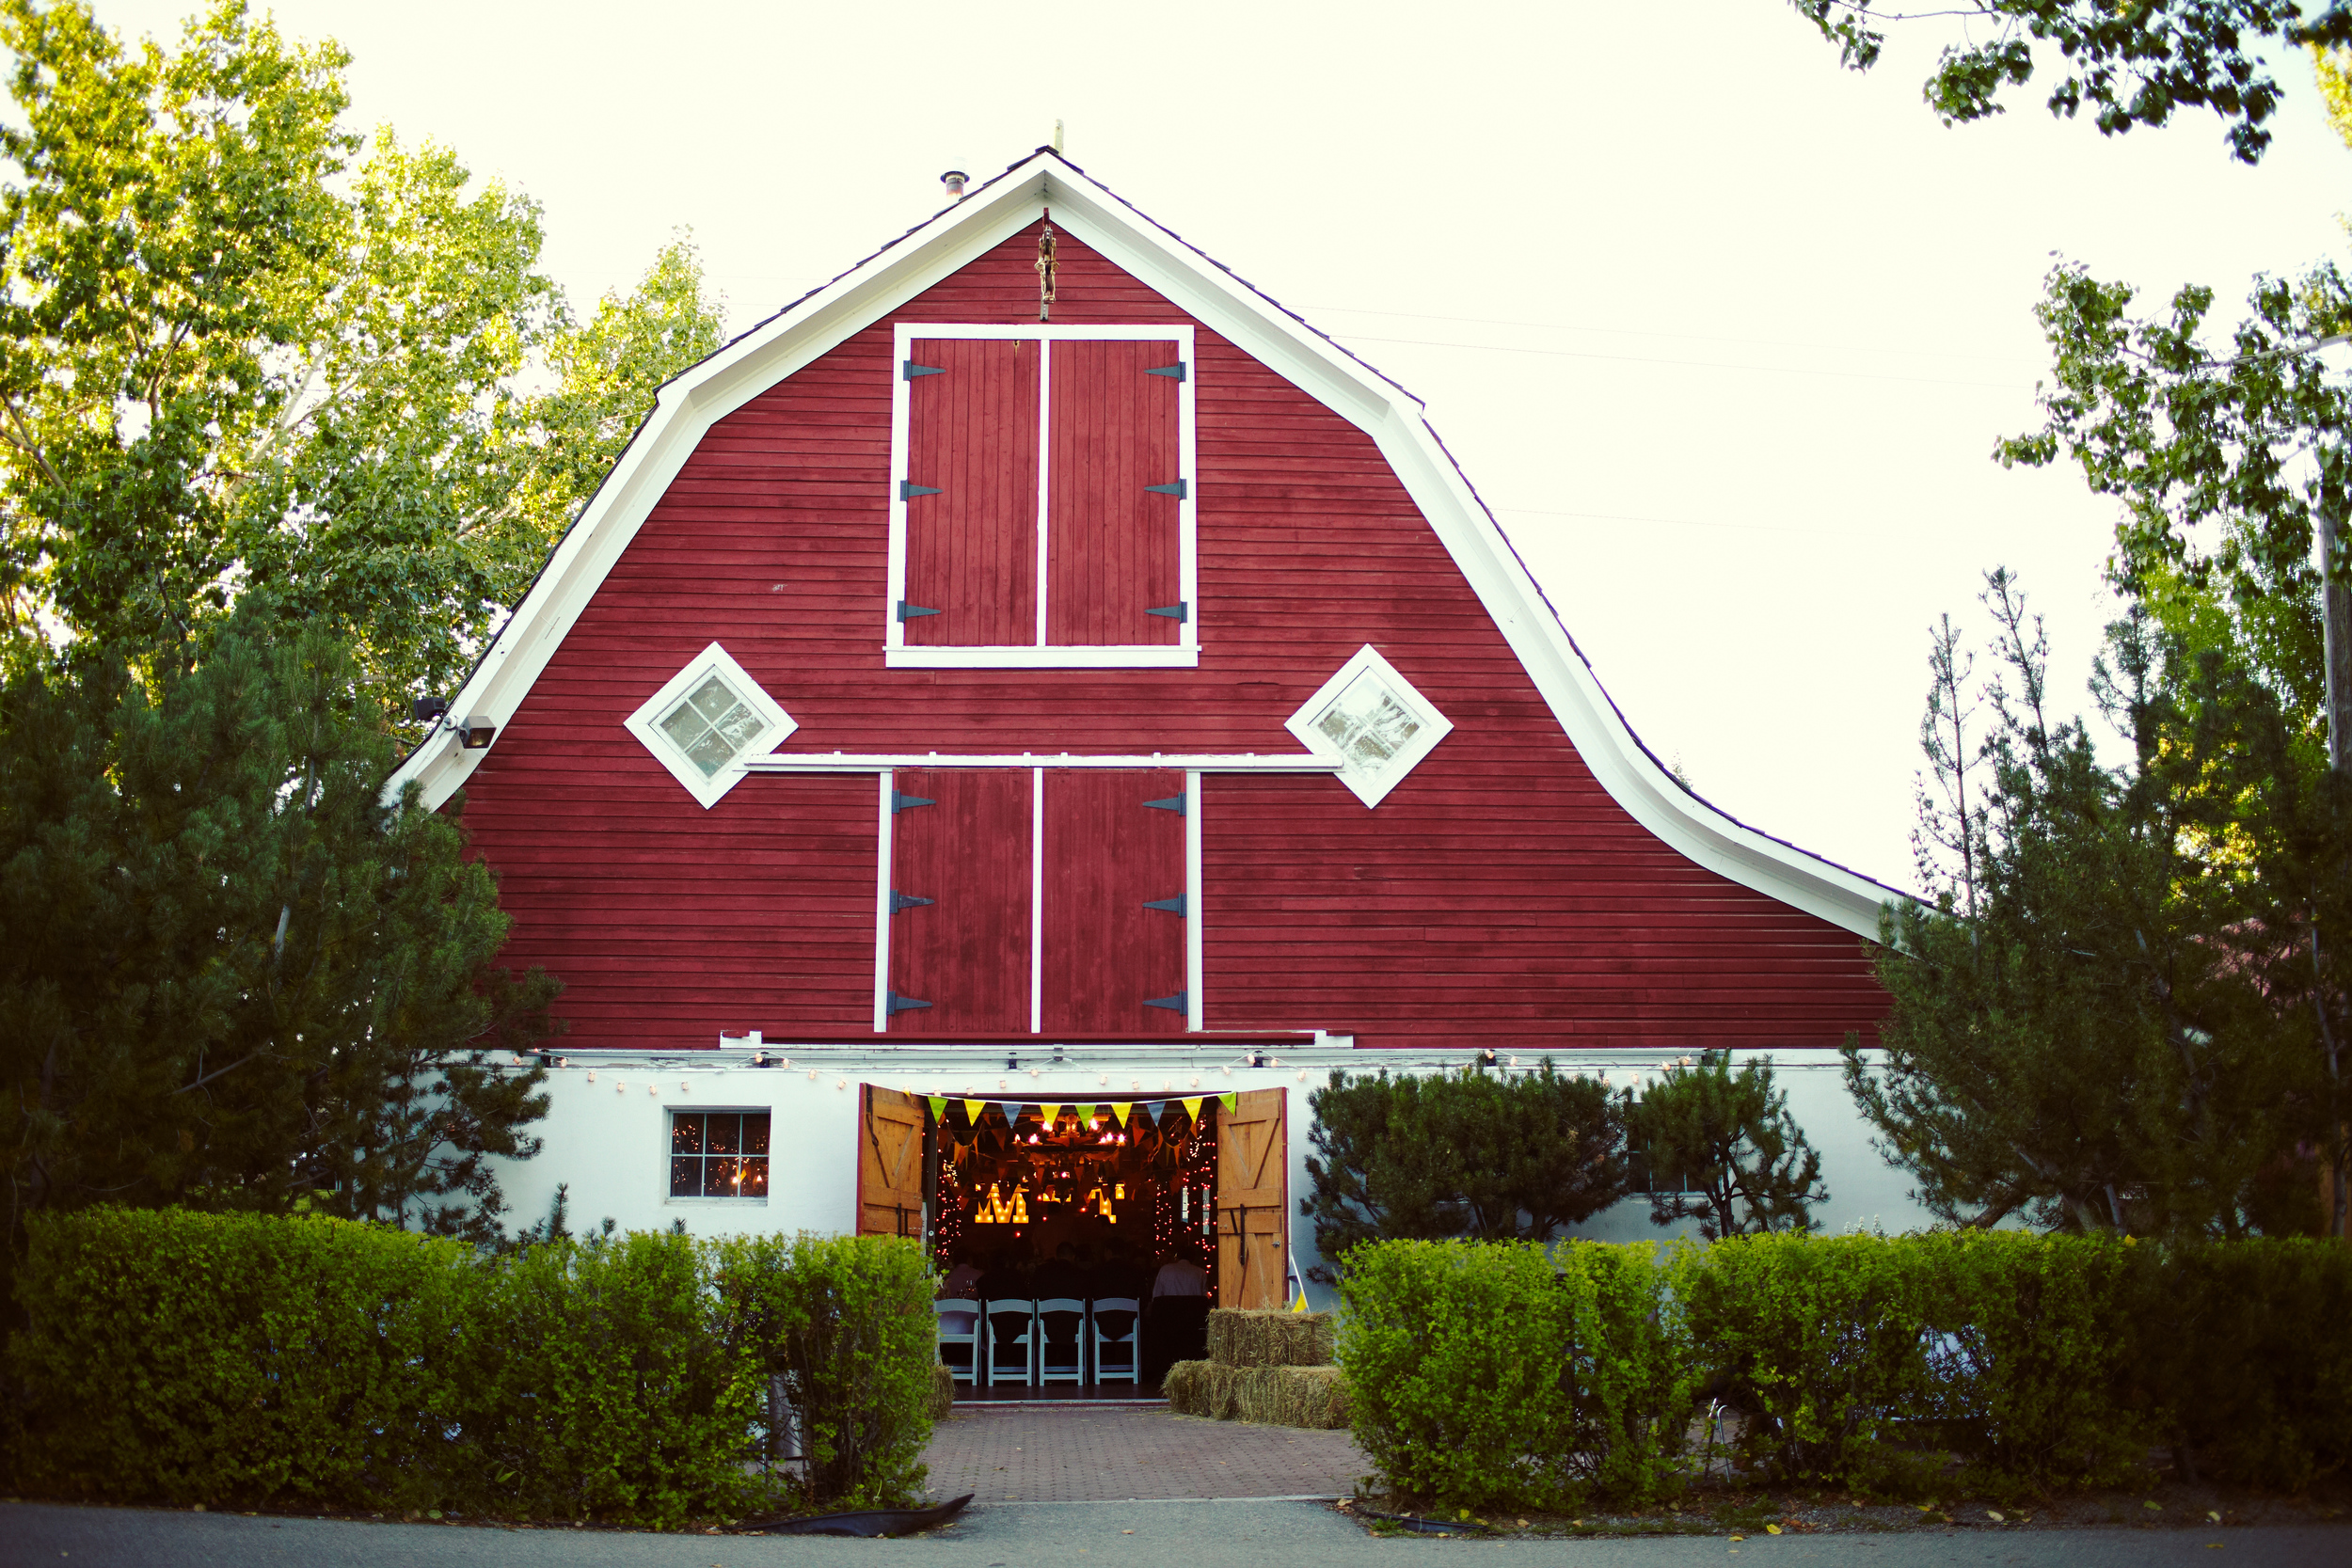 Shawnessy Barn is a fantastic wedding venue with easy access to a lovely park